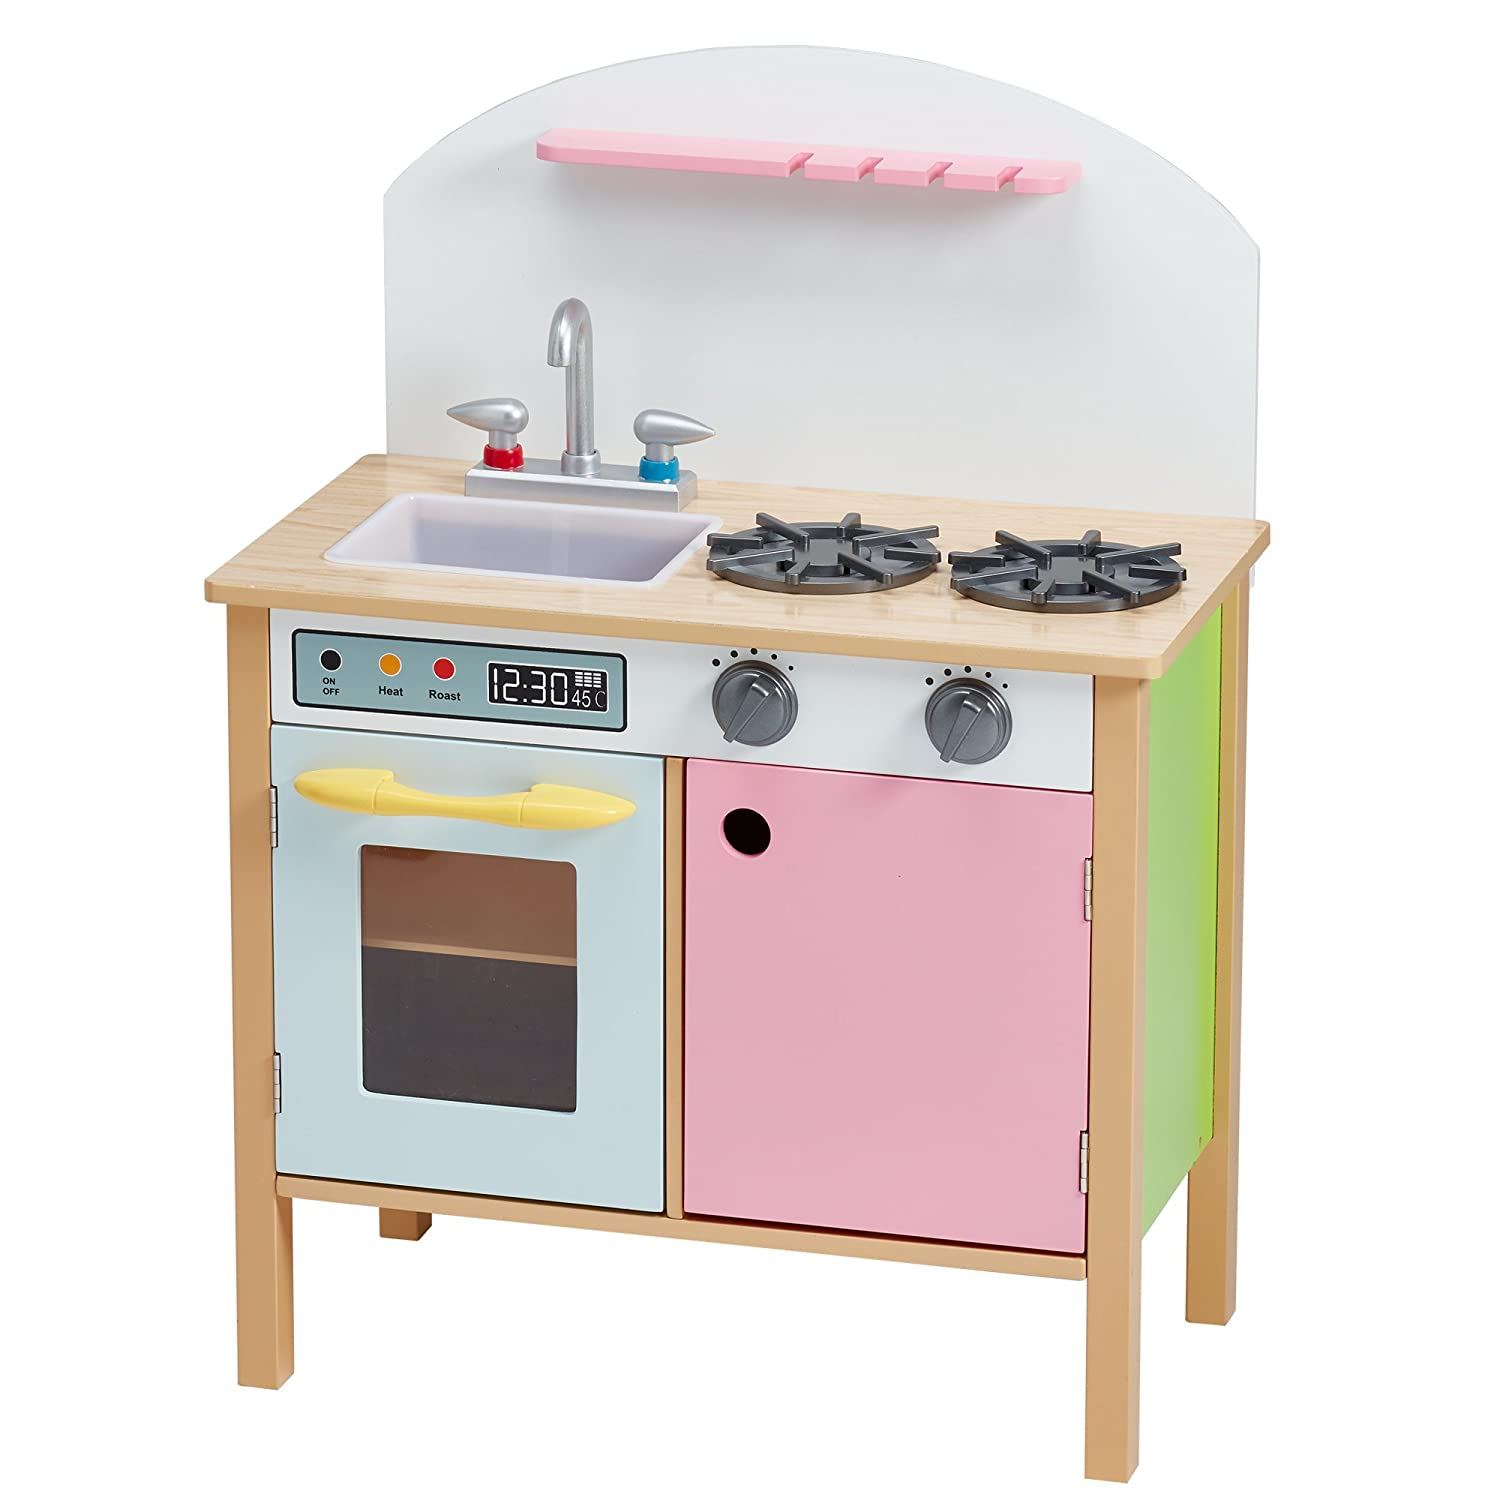 amazoncom teamson kids  pink play kitchen with dual doors toys . amazoncom teamson kids  pink play kitchen with dual doors toys  games